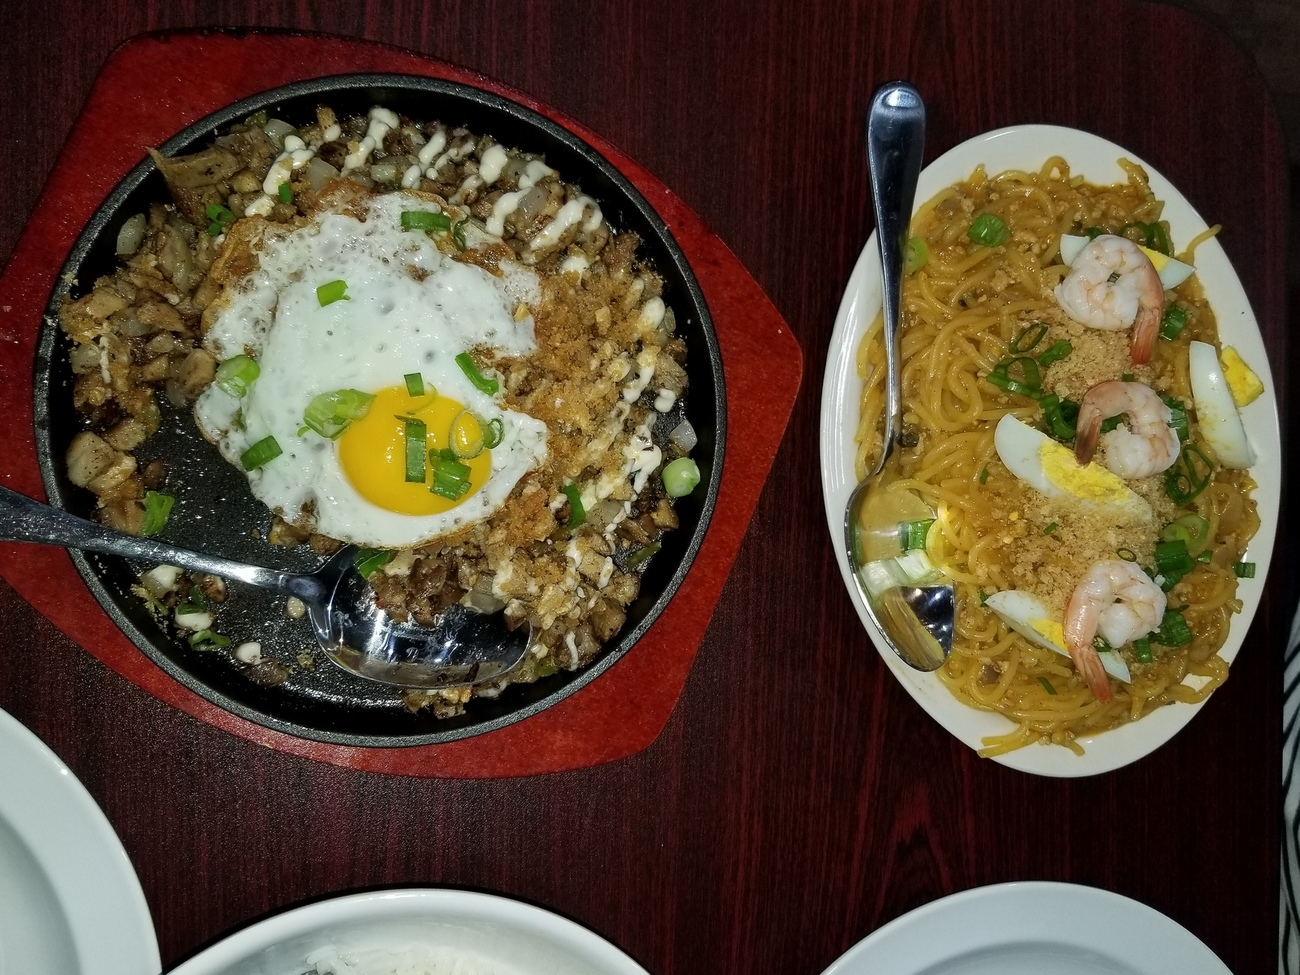 Sisig on left/ Palabok on right today at lunch by Richardphotos